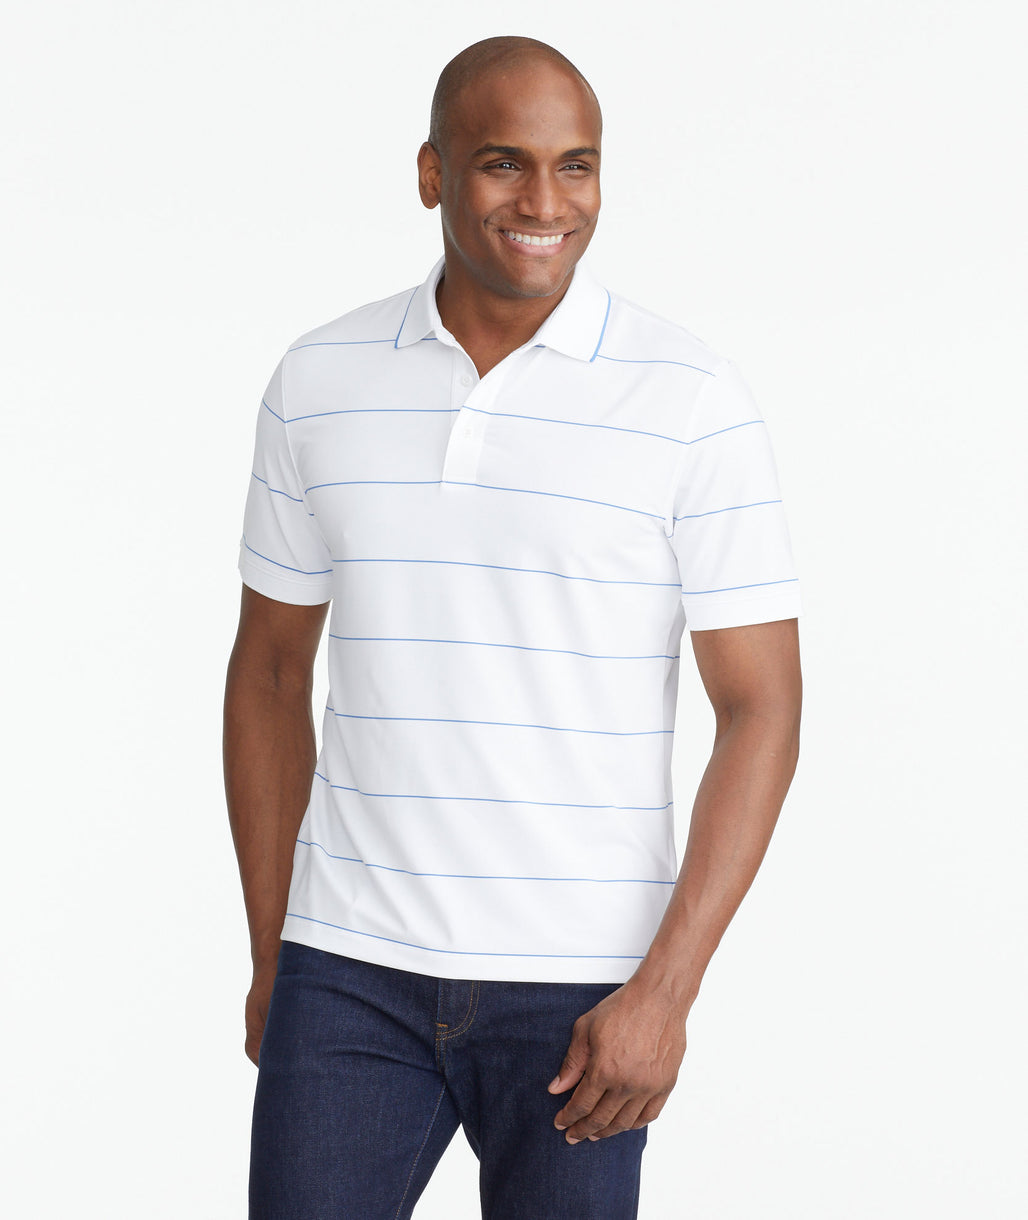 Model wearing a White Luxe Performance Polo